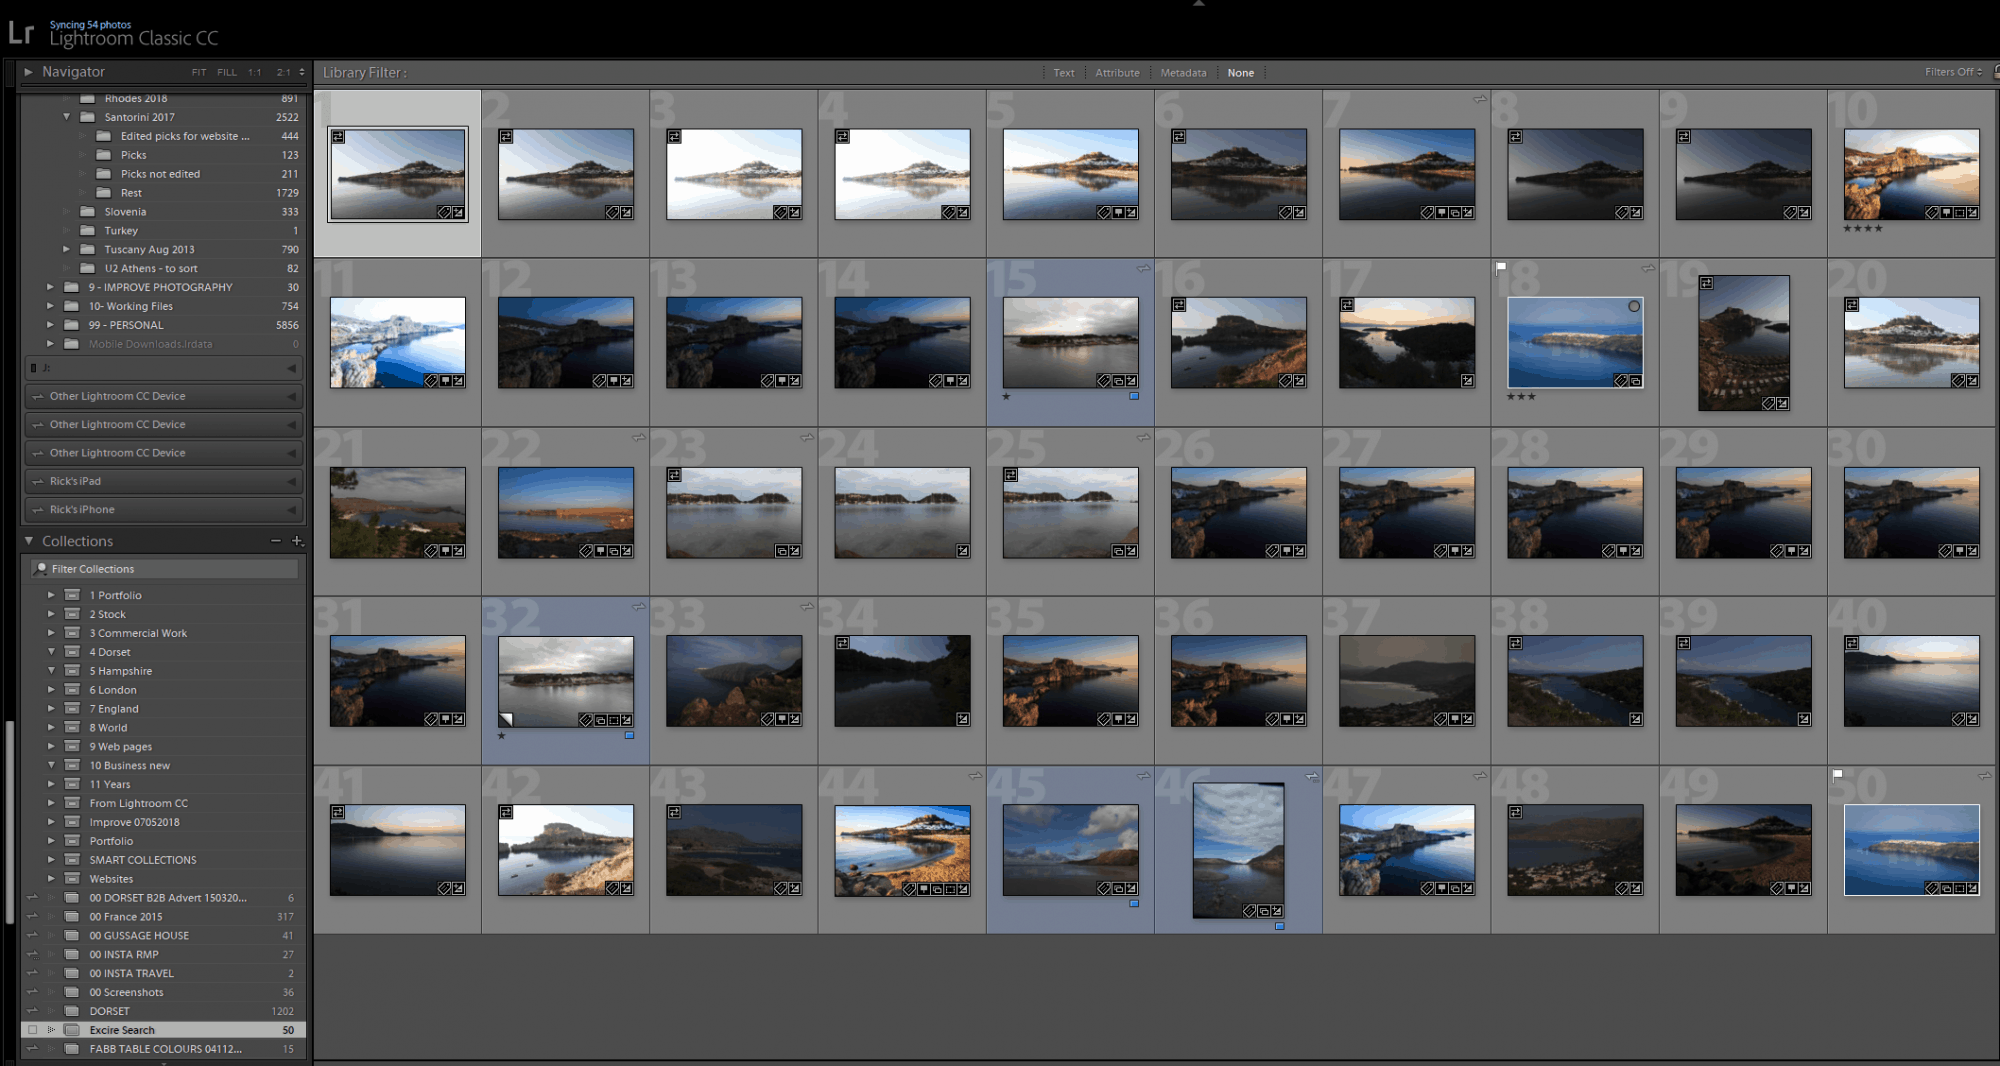 Advanced searching in Lightroom Classic with Excire Search